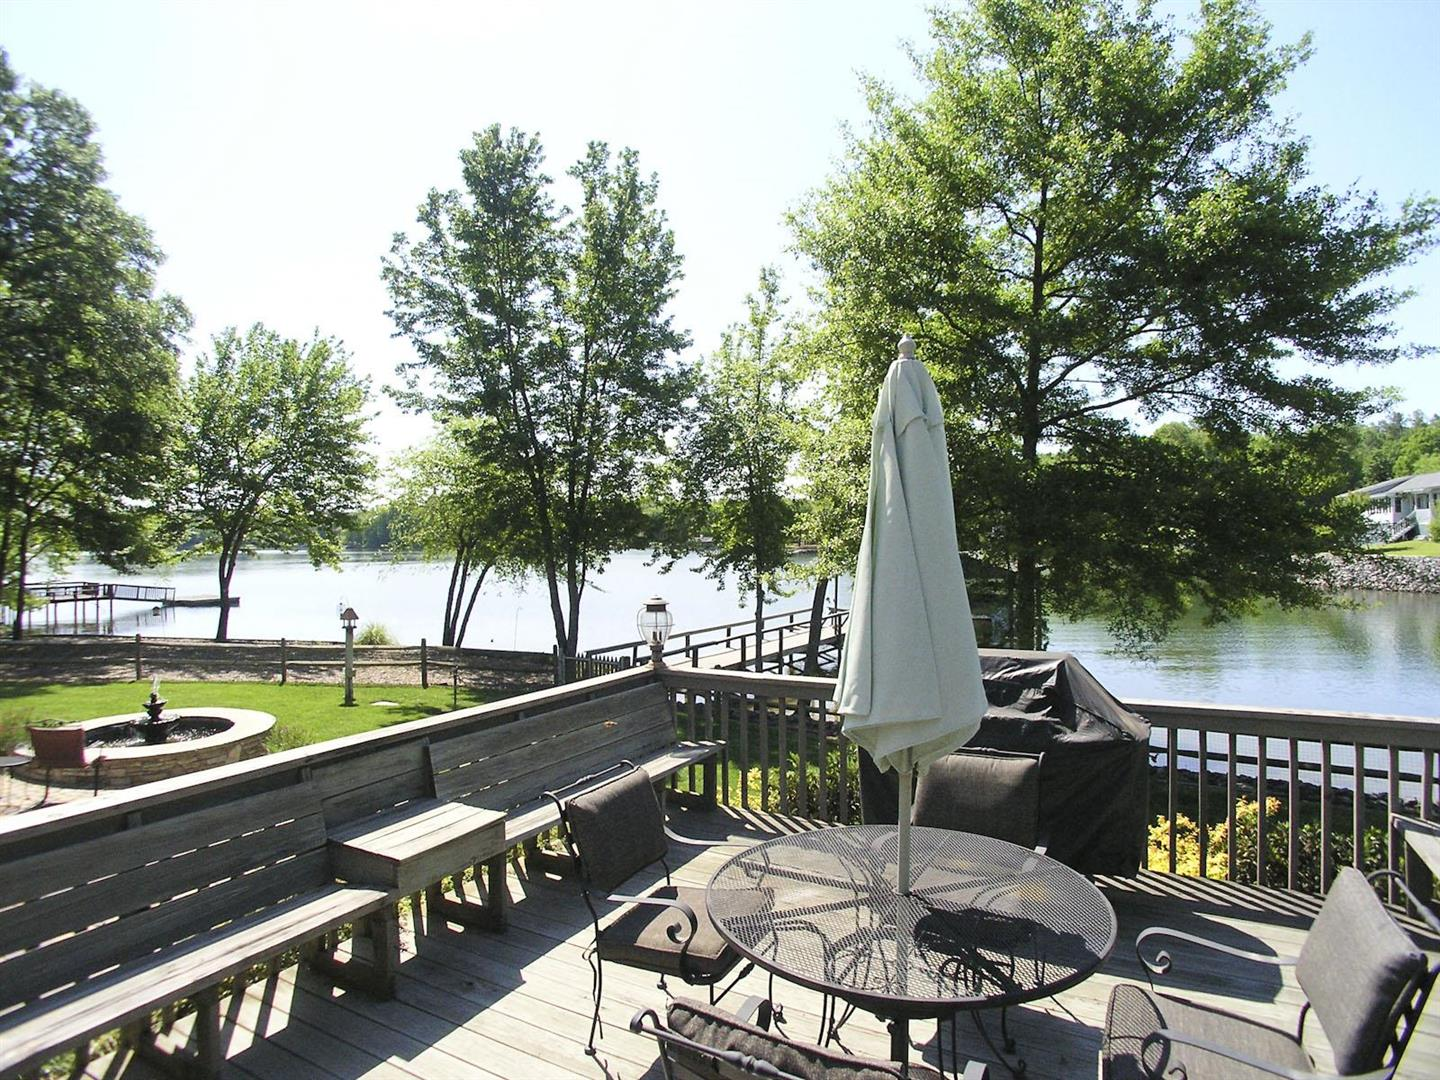 Preferential Sale Lake Wylie South Carolina Lakefront Homes Lake Properties Lakefront Homes Branson Mo Lakefront Homes Sale California curbed Lakefront Homes For Sale